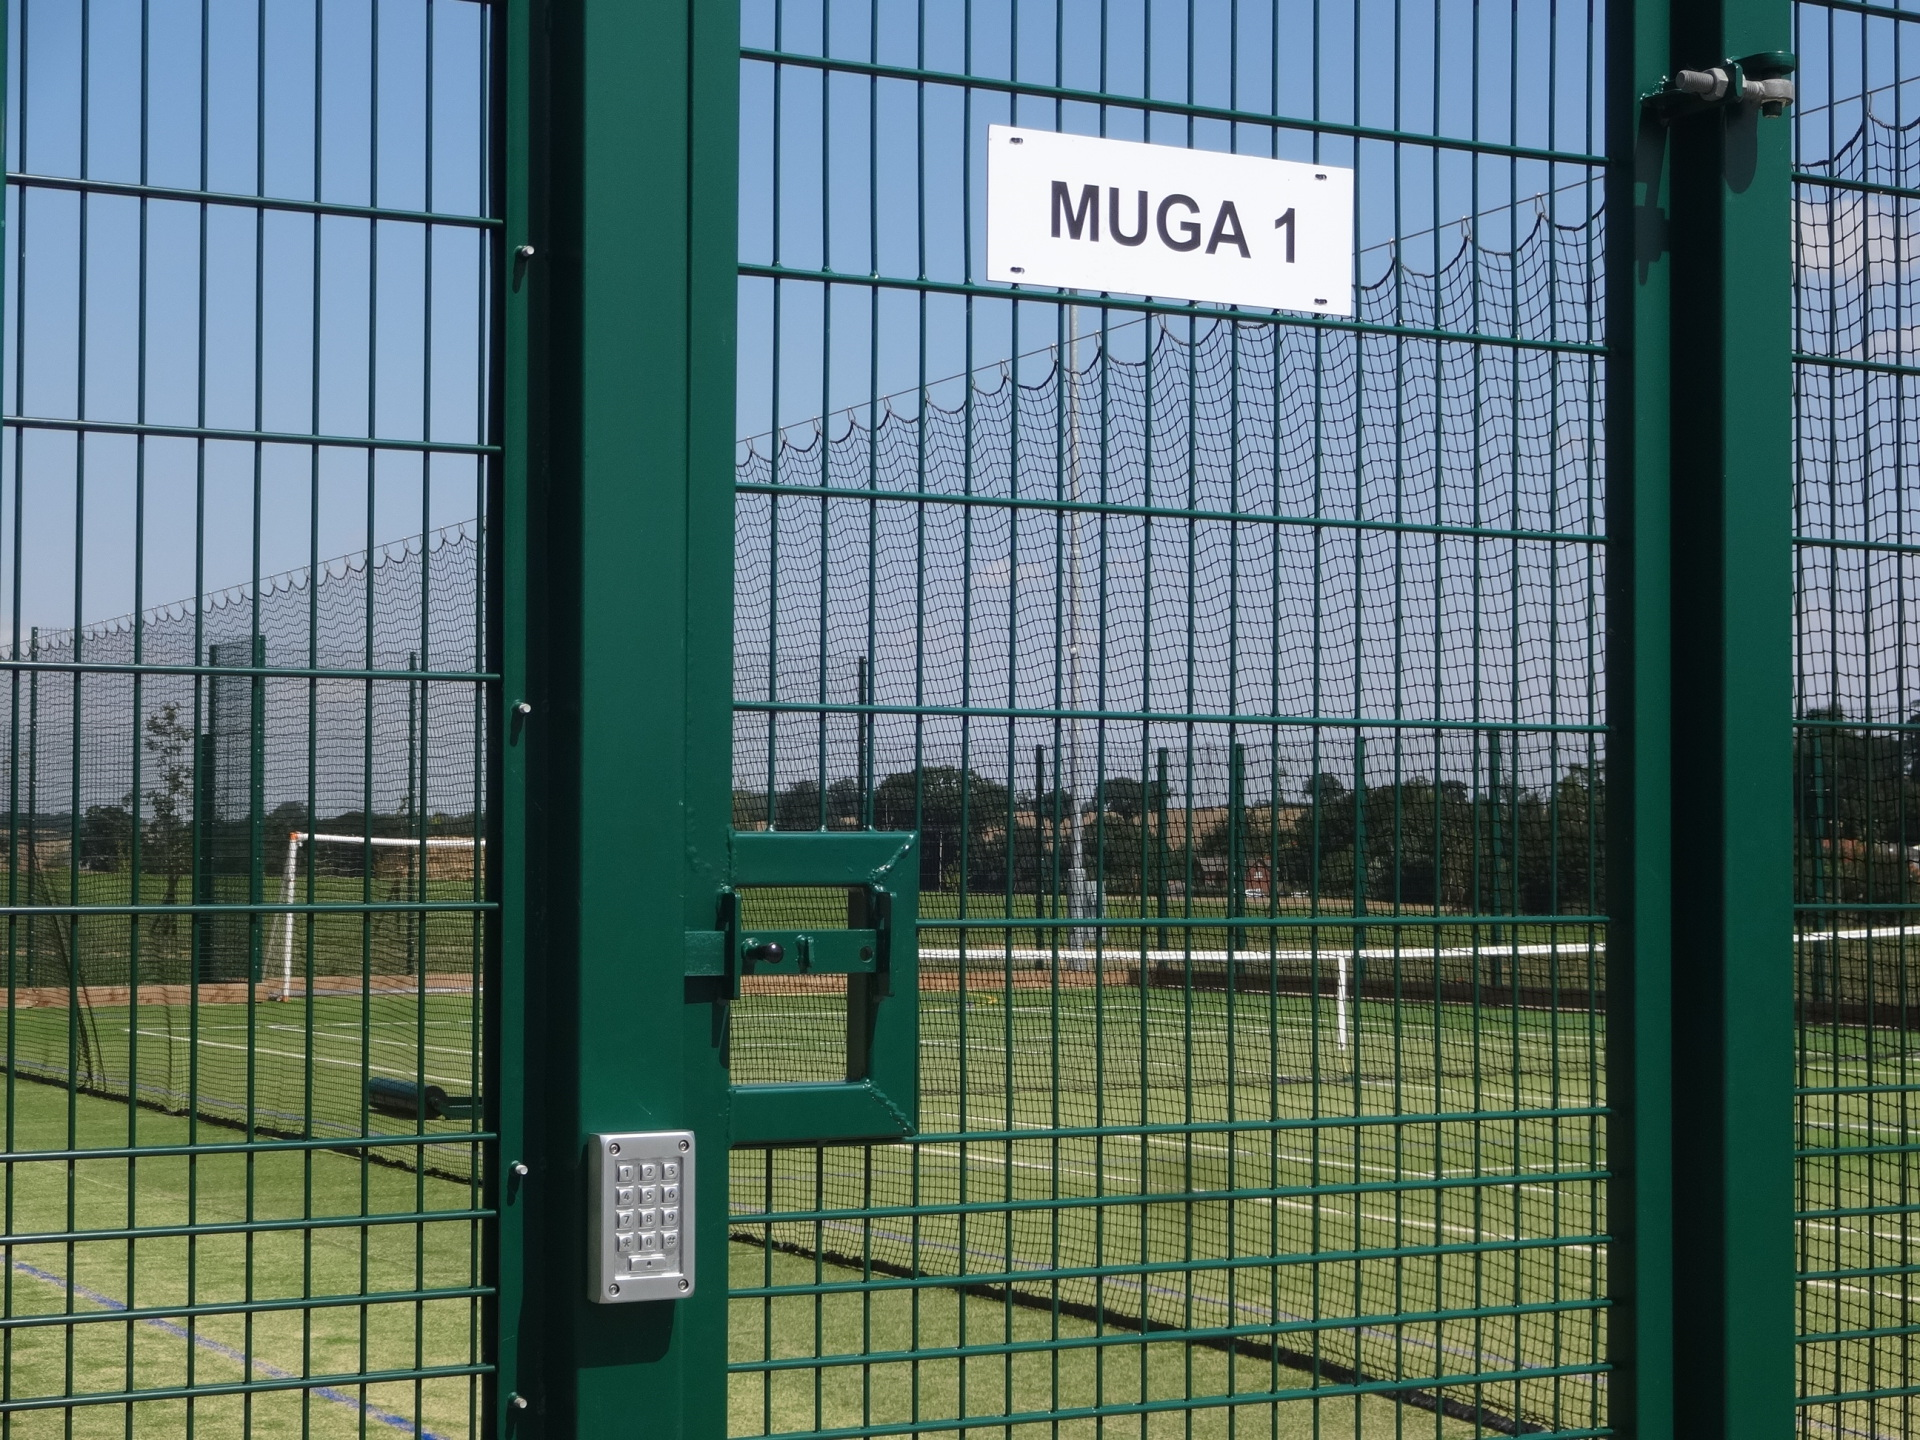 MUGA - Multi Use Games Area / Astro